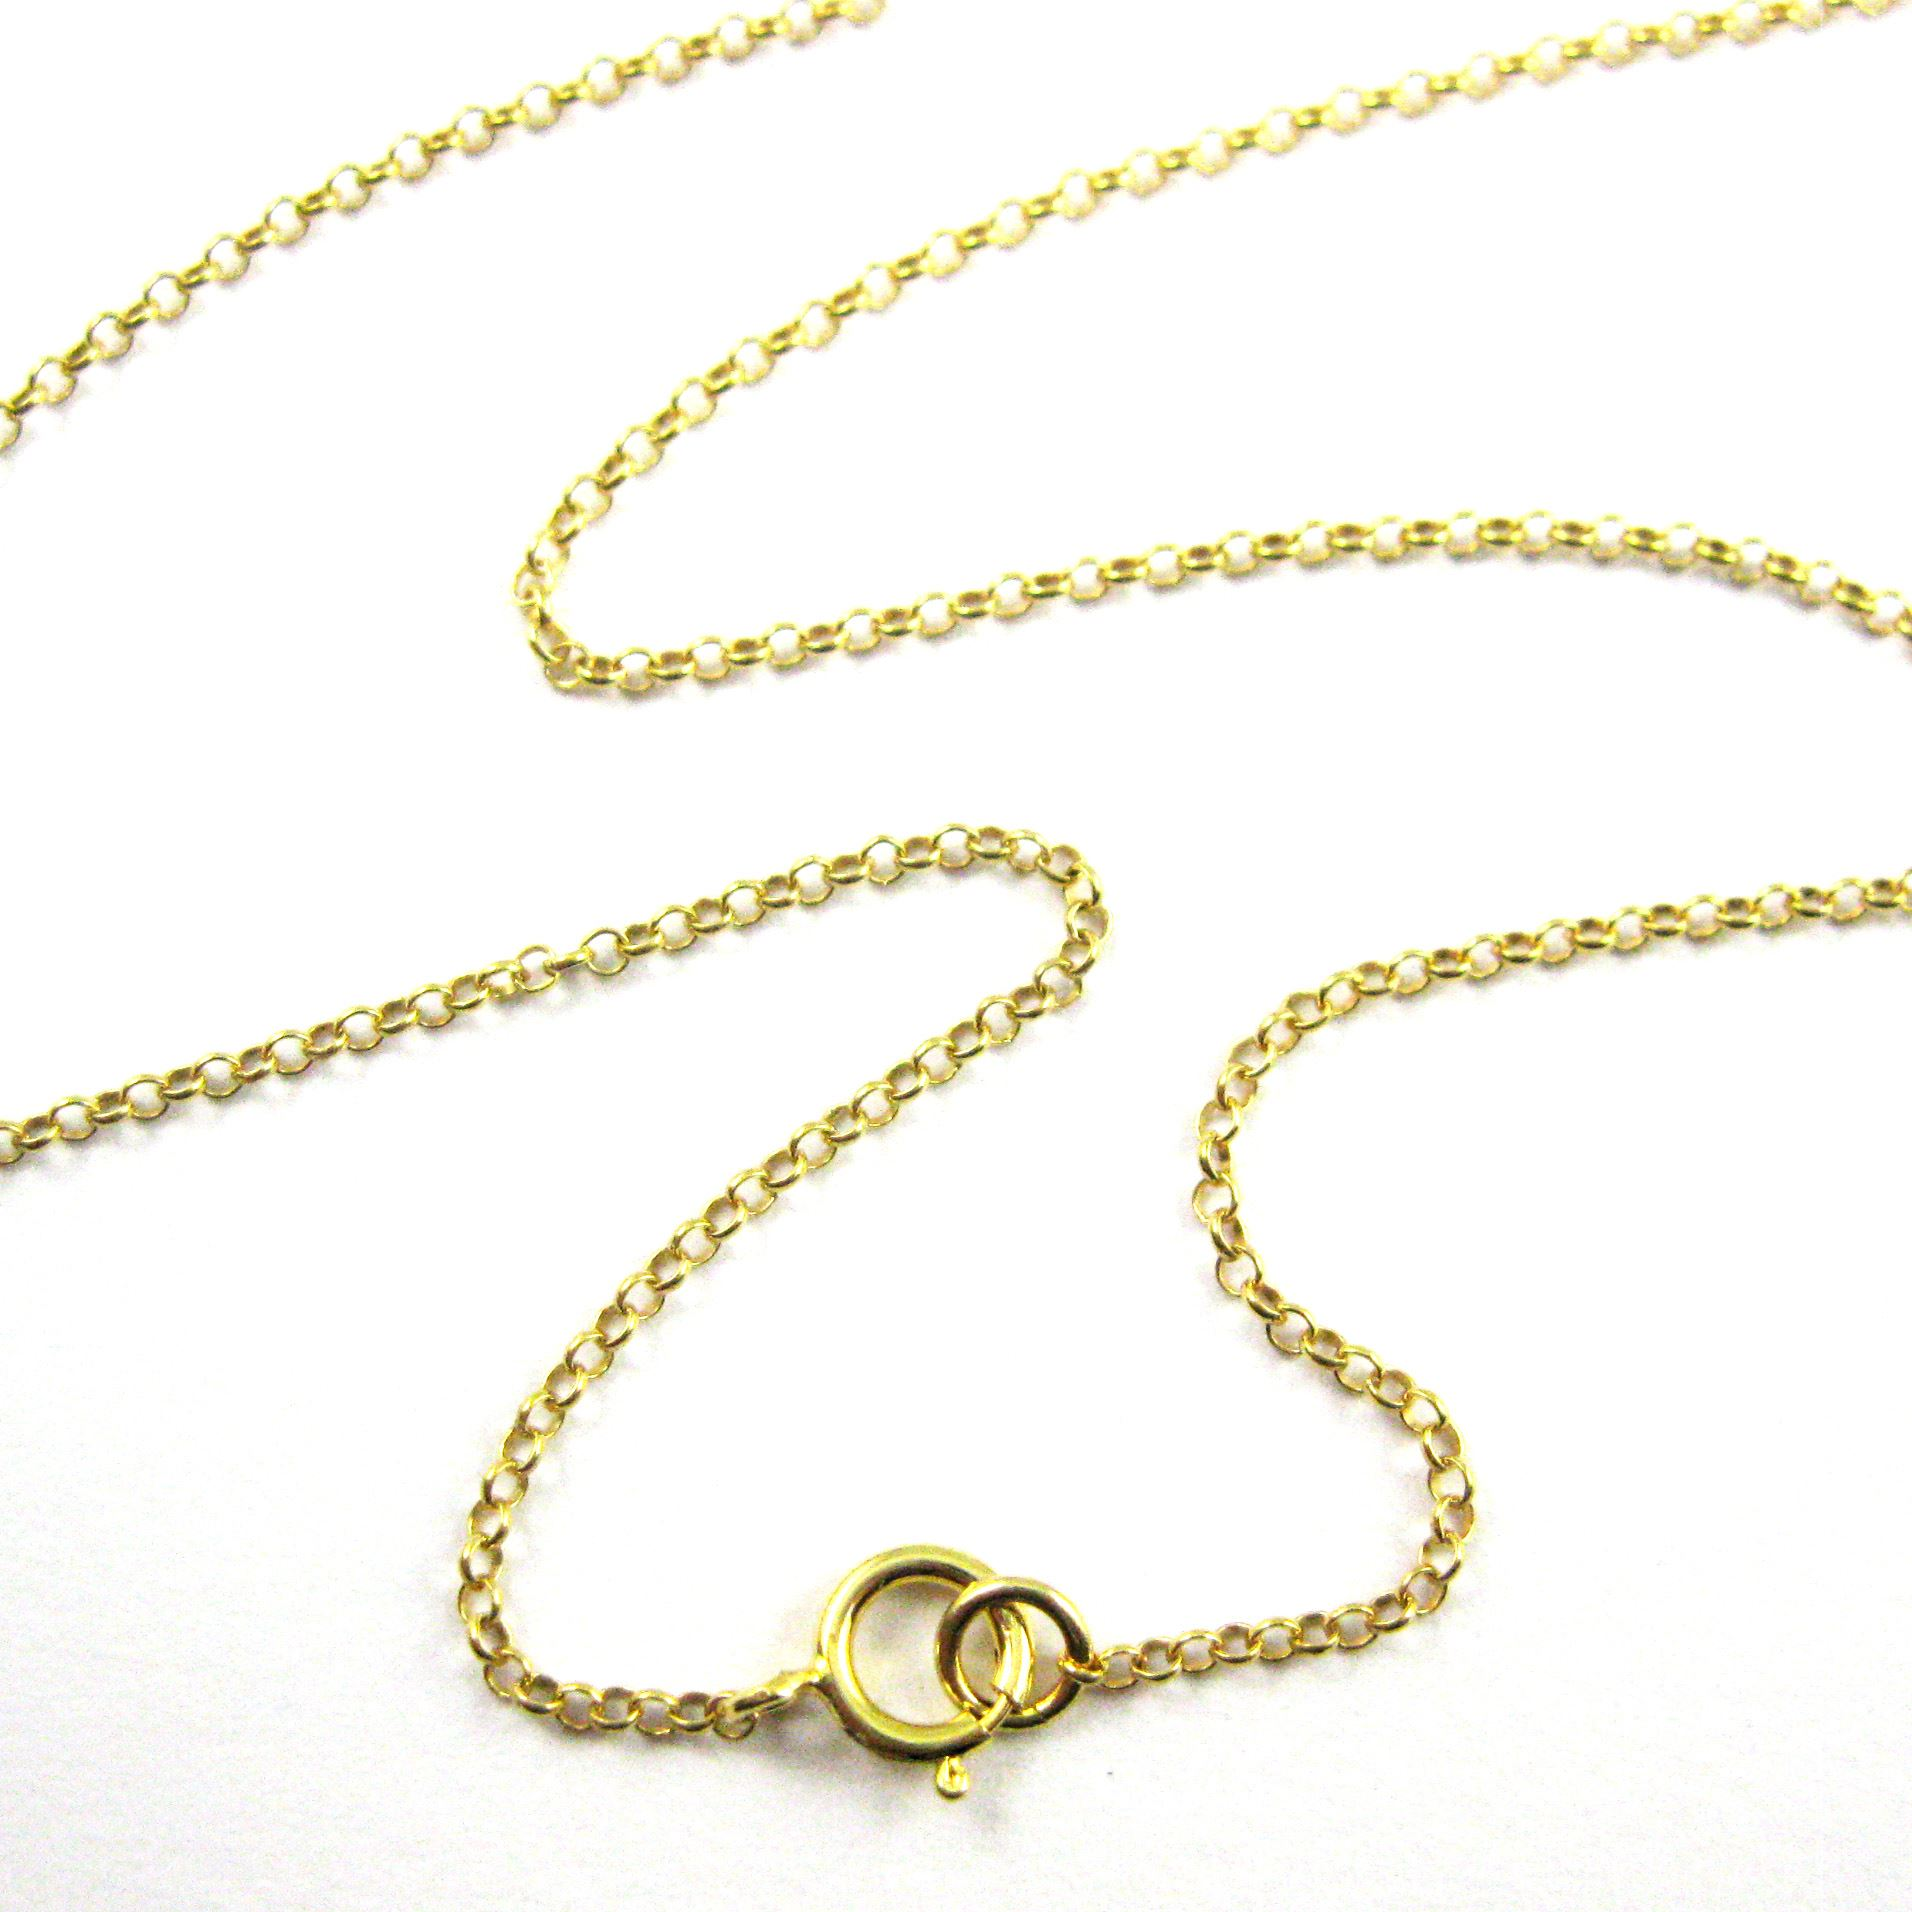 22k Gold plated 925 Sterling Silver Chain, Necklace, Bracelet. Anklet - Vermeil 1mm Rolo Chain- Rolo Chain Necklace for Pendant - All Sizes